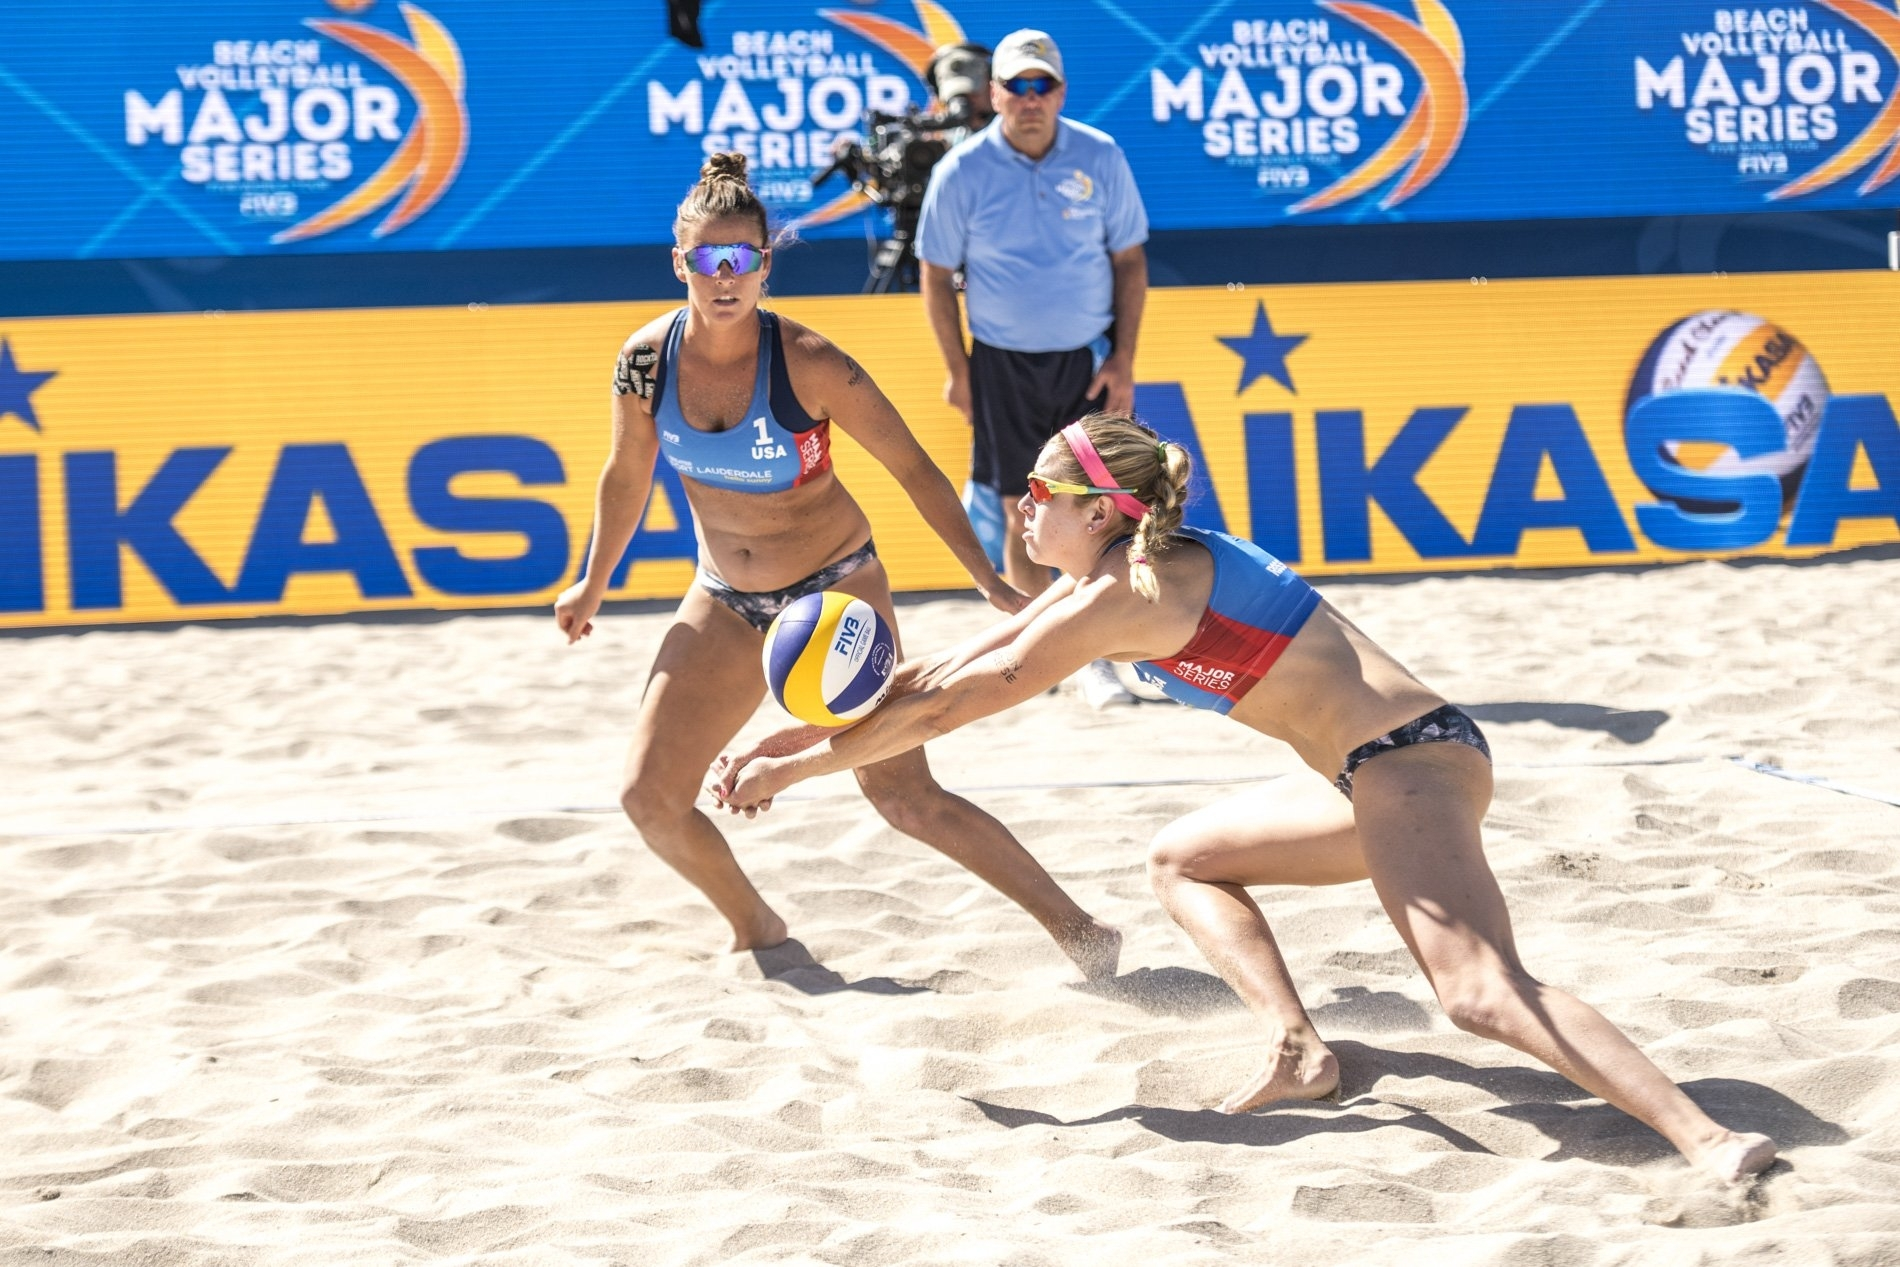 Brooke and Summer are on the podium for the USA on home sand!